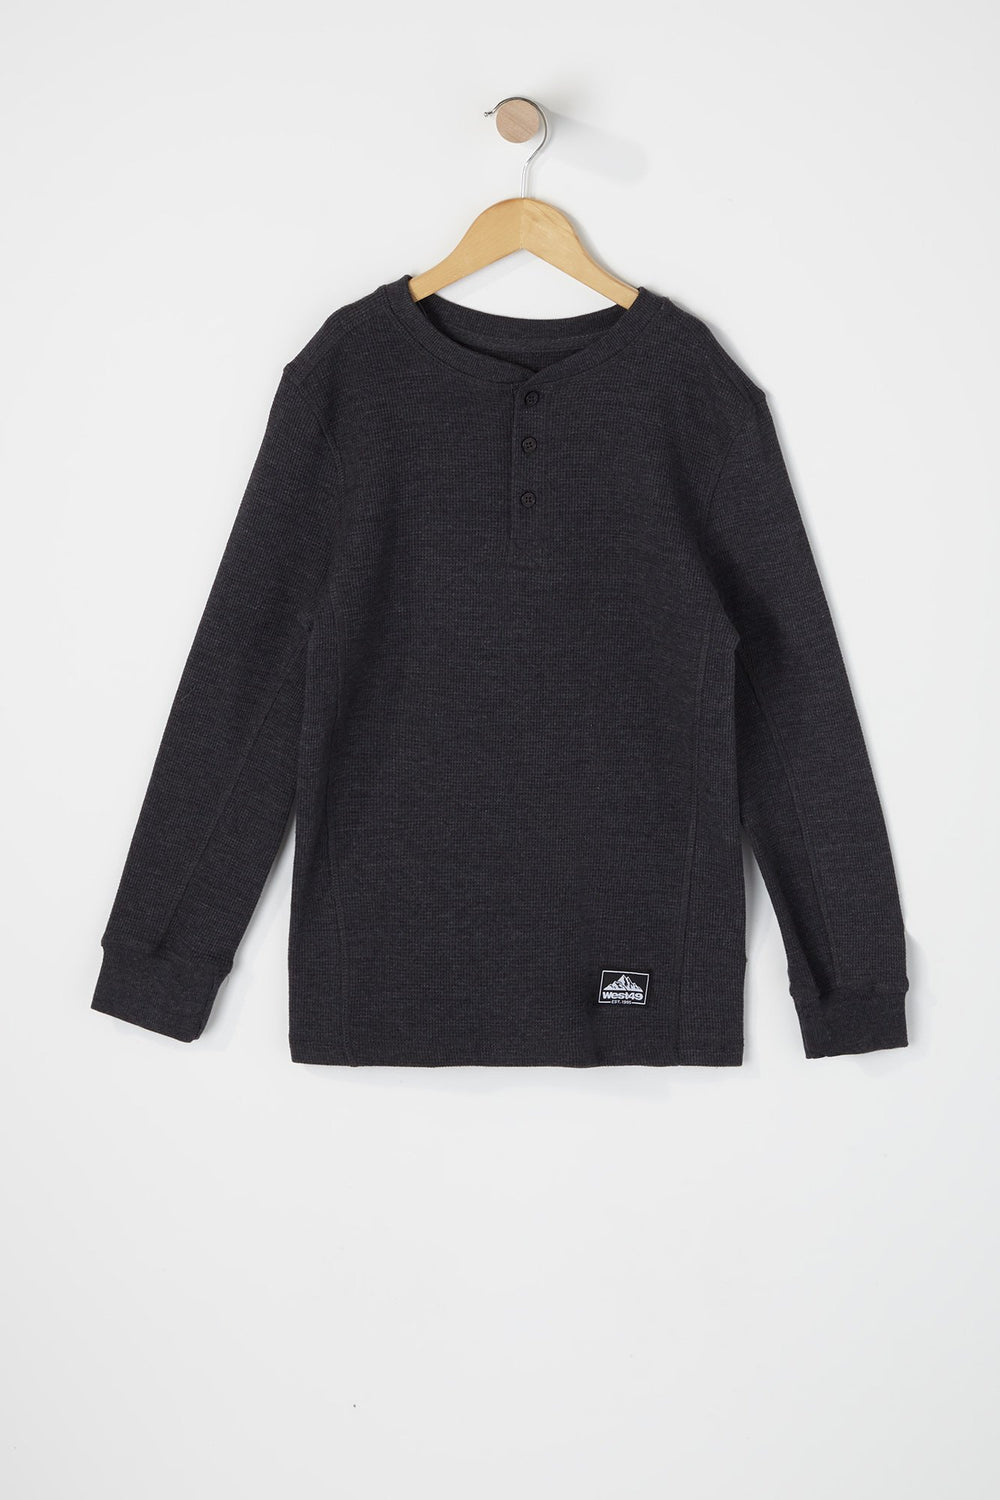 West49 Boys Waffle Henley Long Sleeve Shirt Charcoal